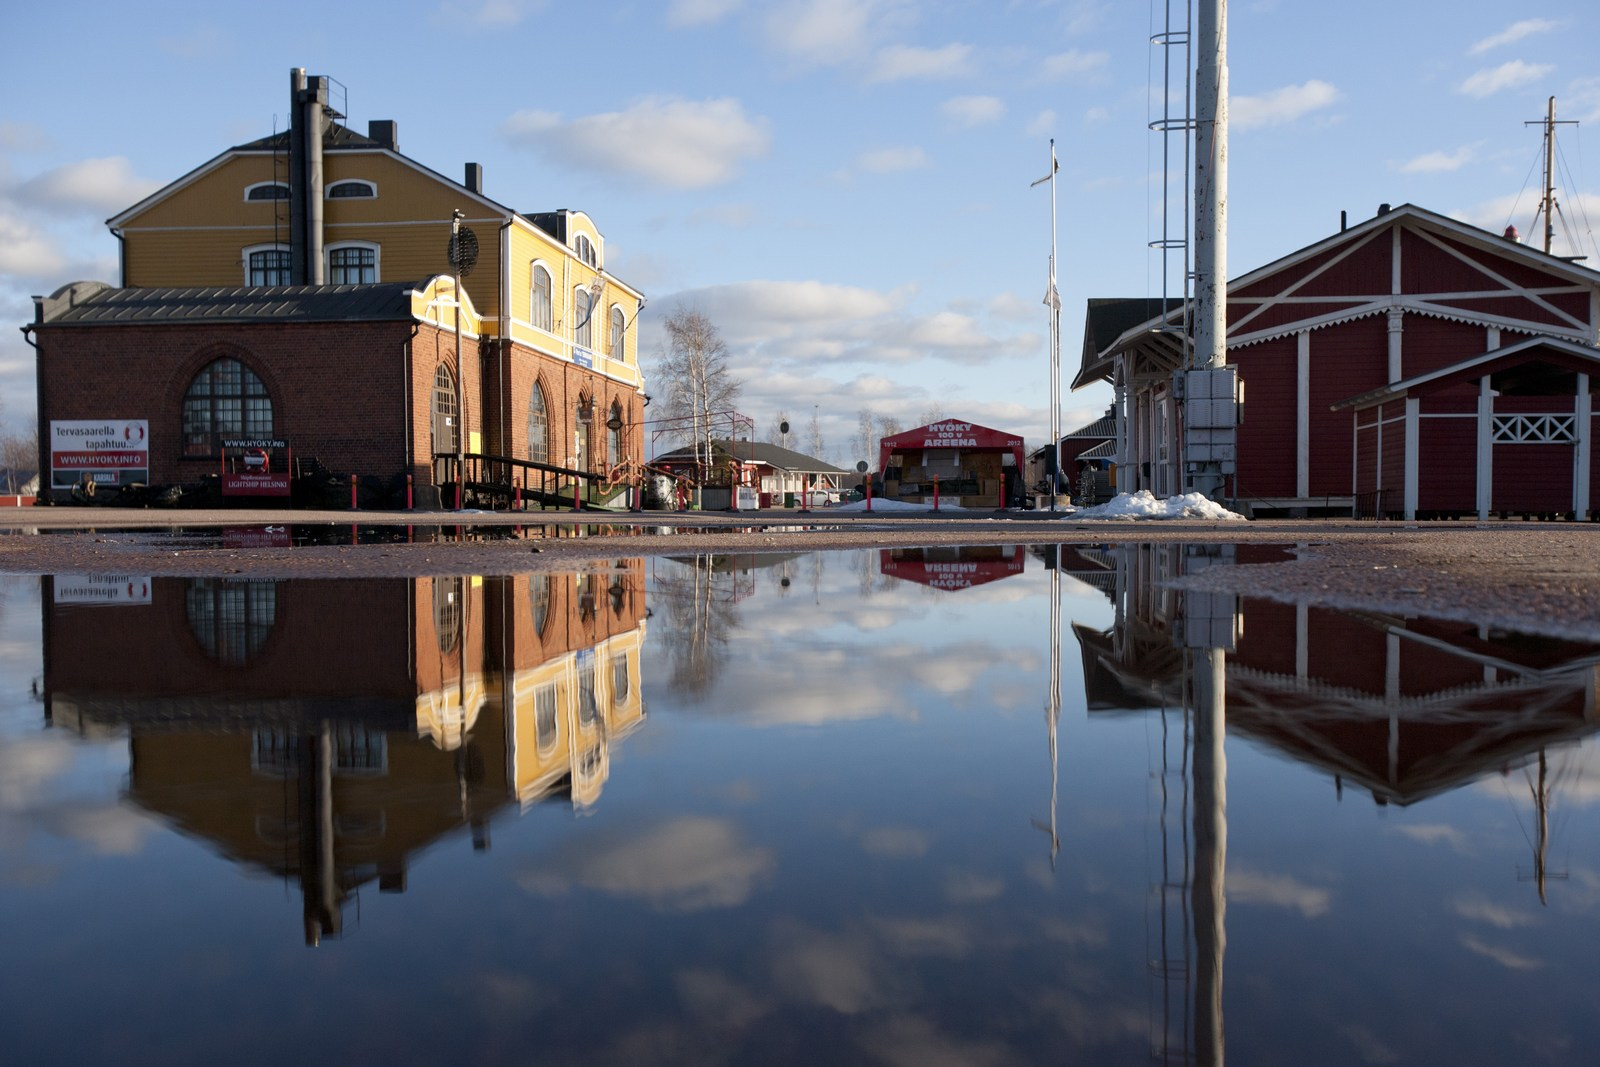 Seven Sights To Visit in the Circular City of Hamina